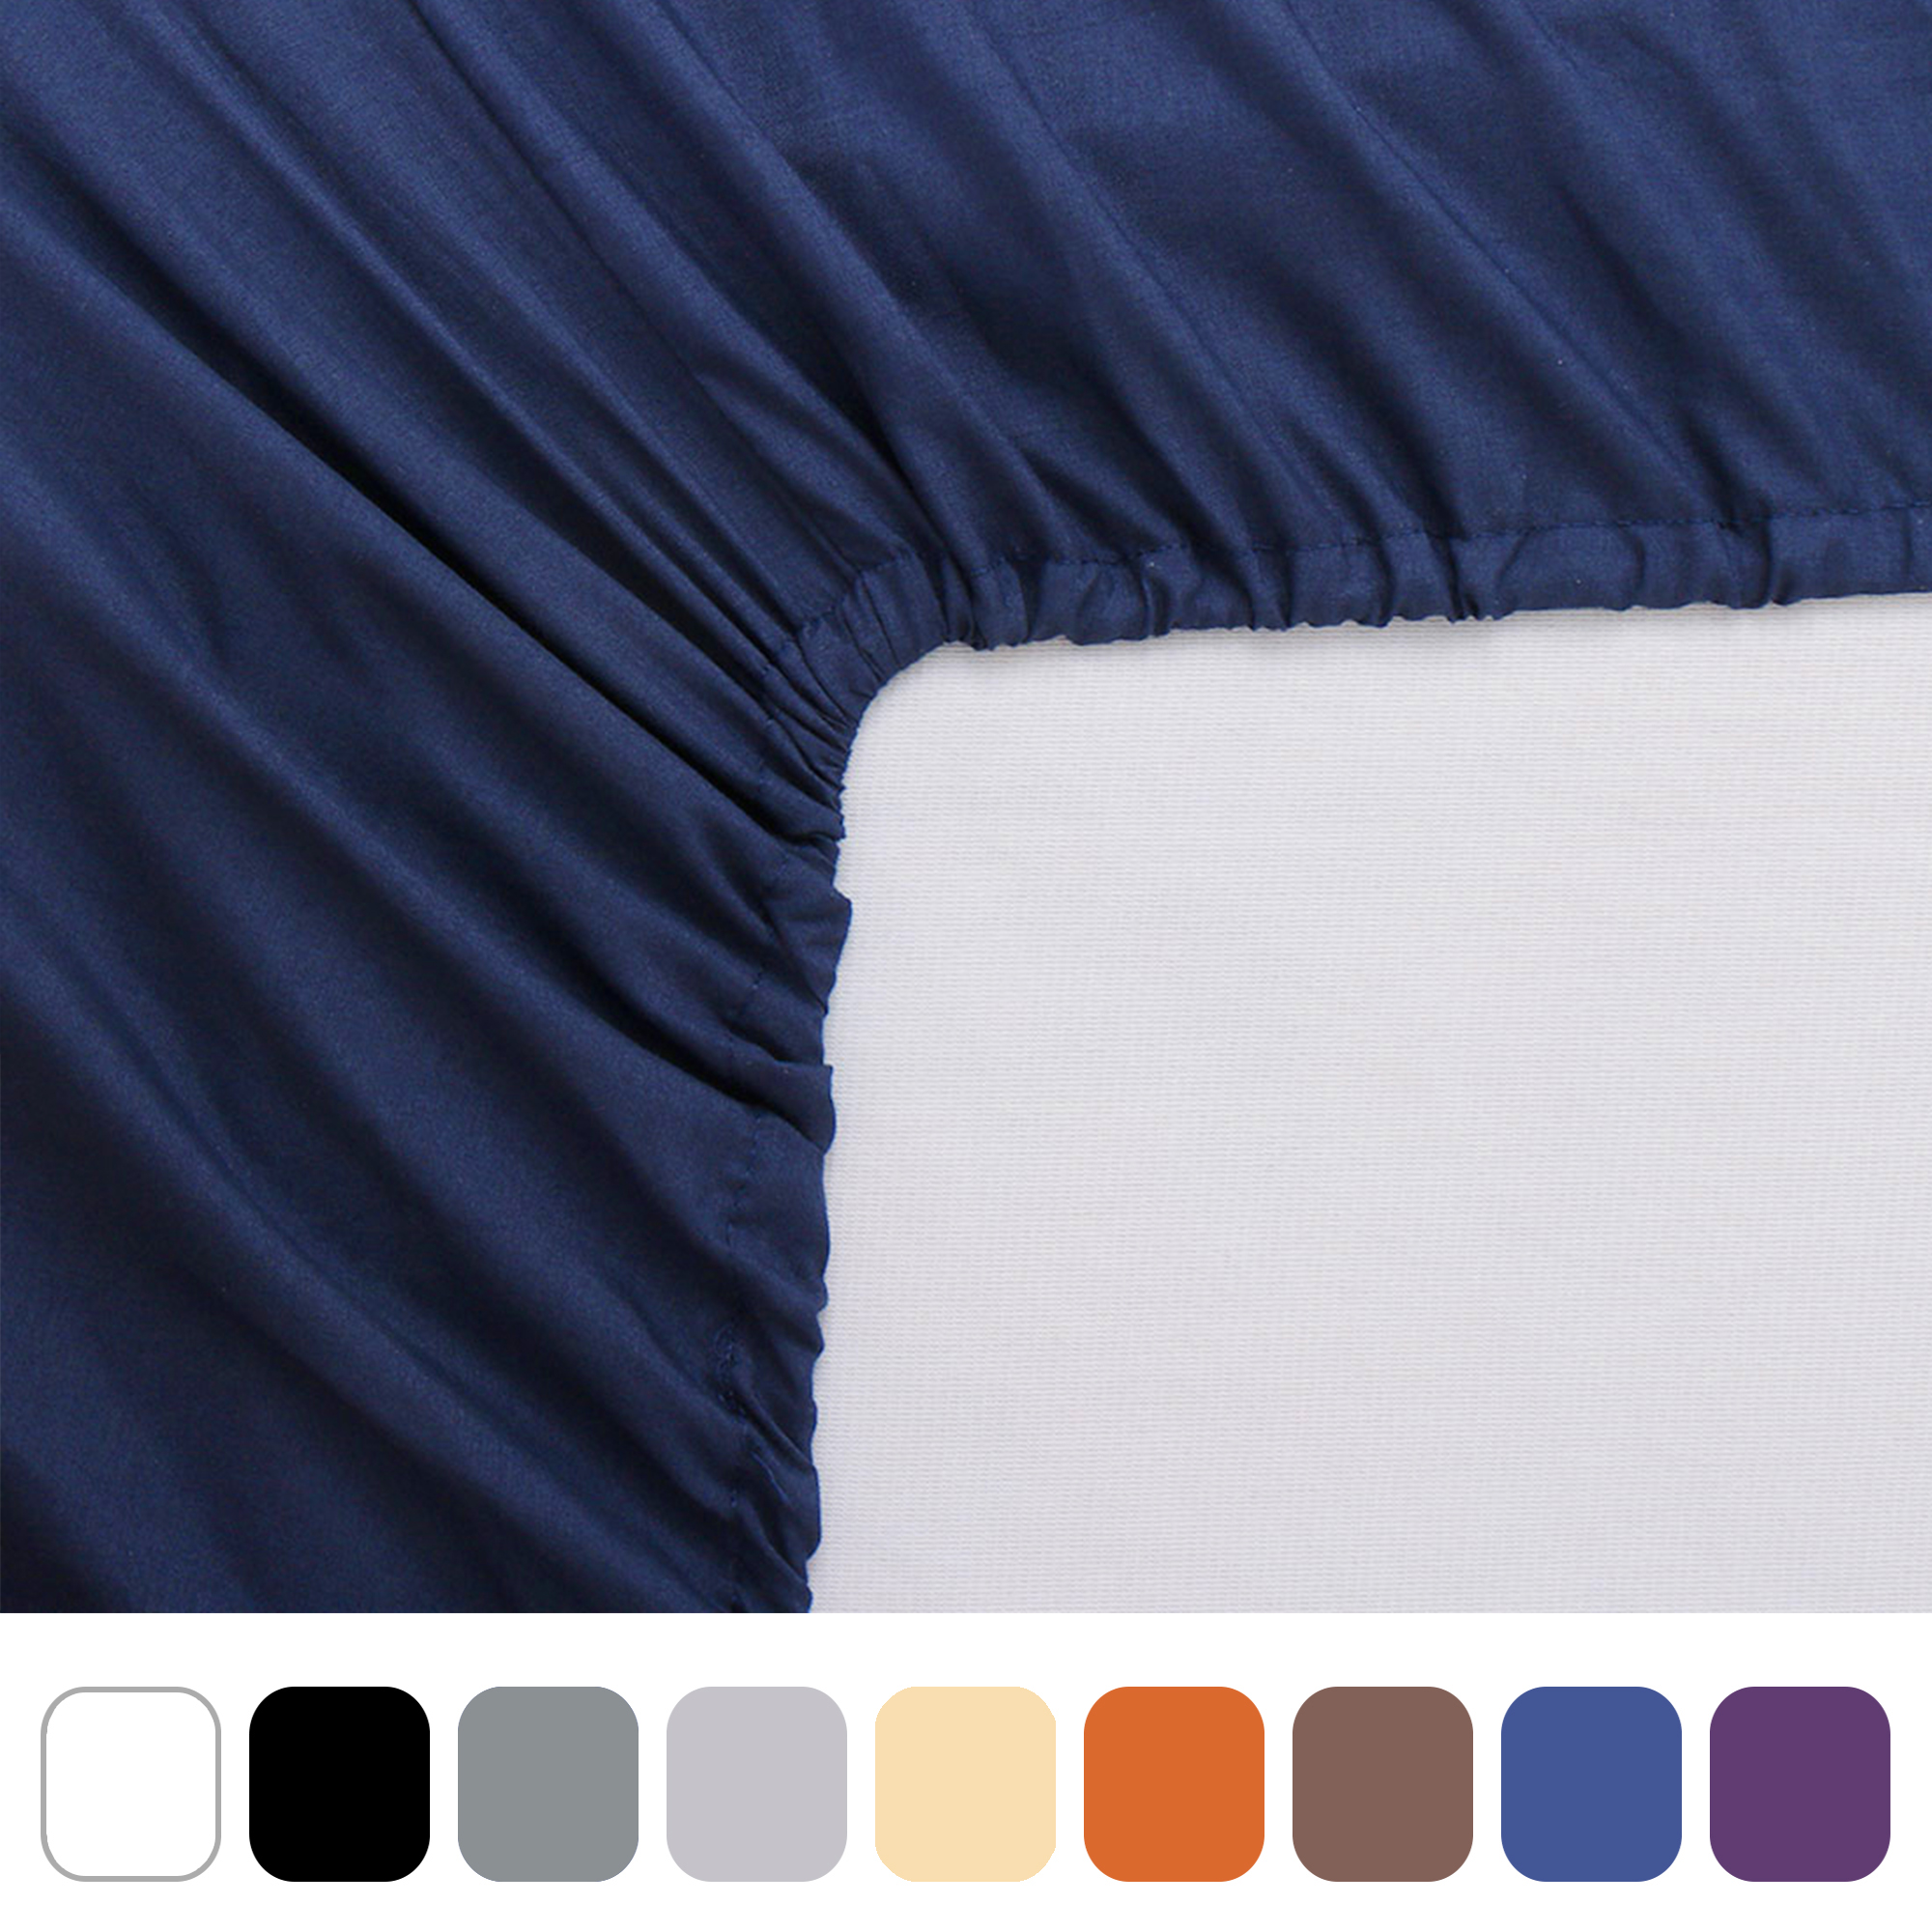 PERCALE single double size fitted sheet 10 inch 25 cm easycare color LIGHT BLUE